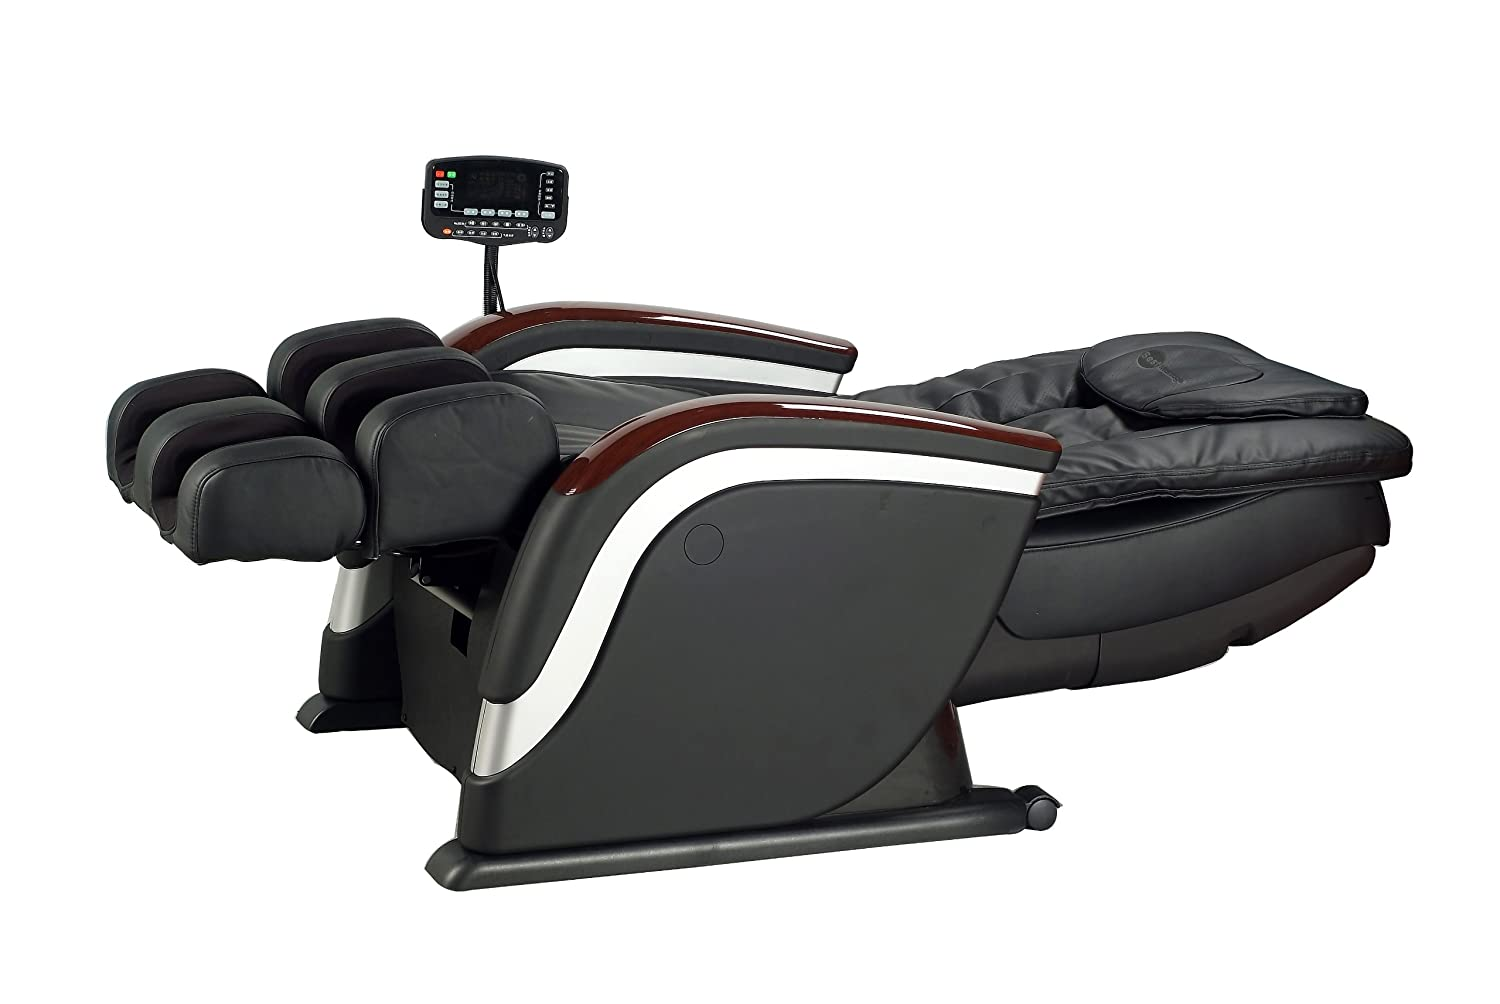 Amazon.com: New EC03 Full Body Shiatsu Electric Massage Chair Recliner Bed  W/Leg Extending EC03: Health U0026 Personal Care